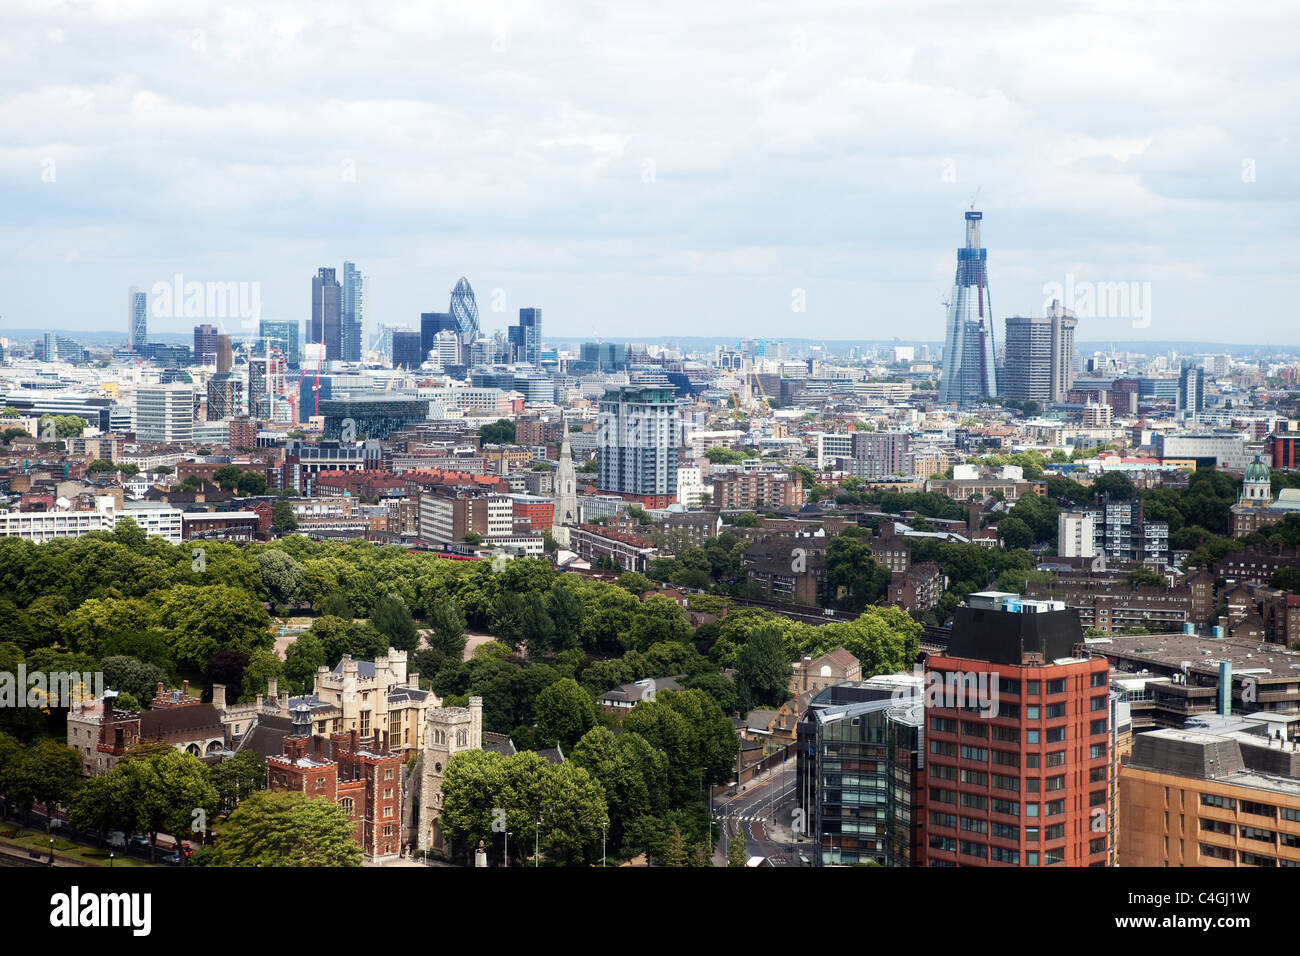 City of London as seen from the North West Stock Photo